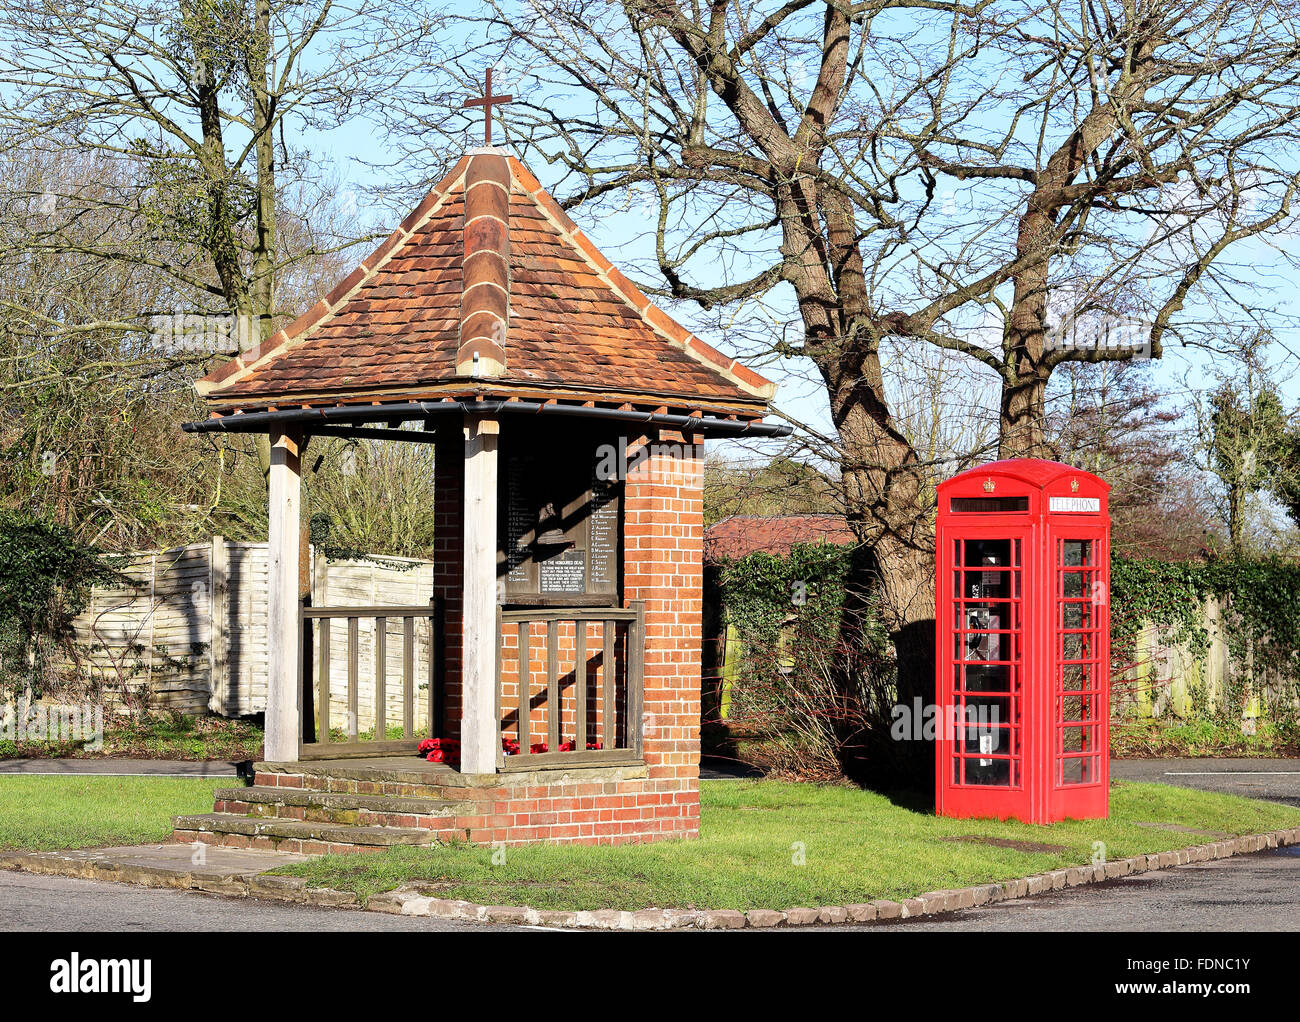 English Village War Memorial shelter and red telephone box - Stock Image